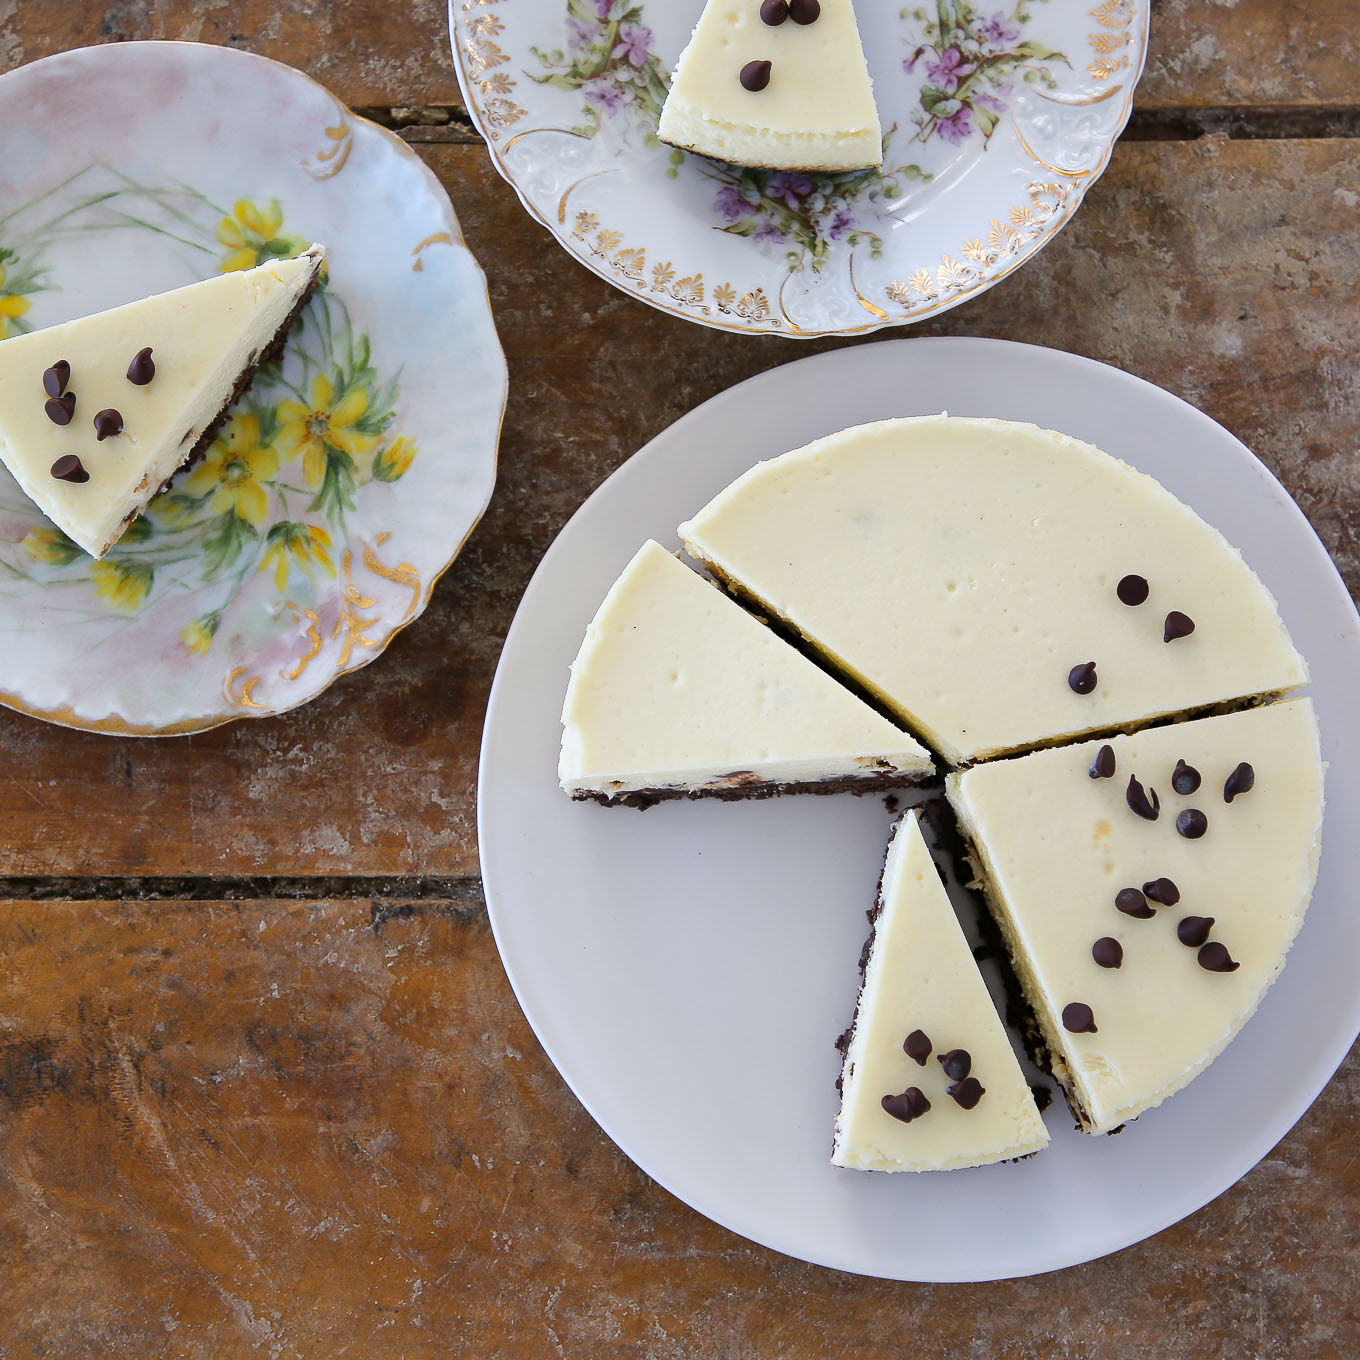 Chocolate Chip Cheesecake sliced